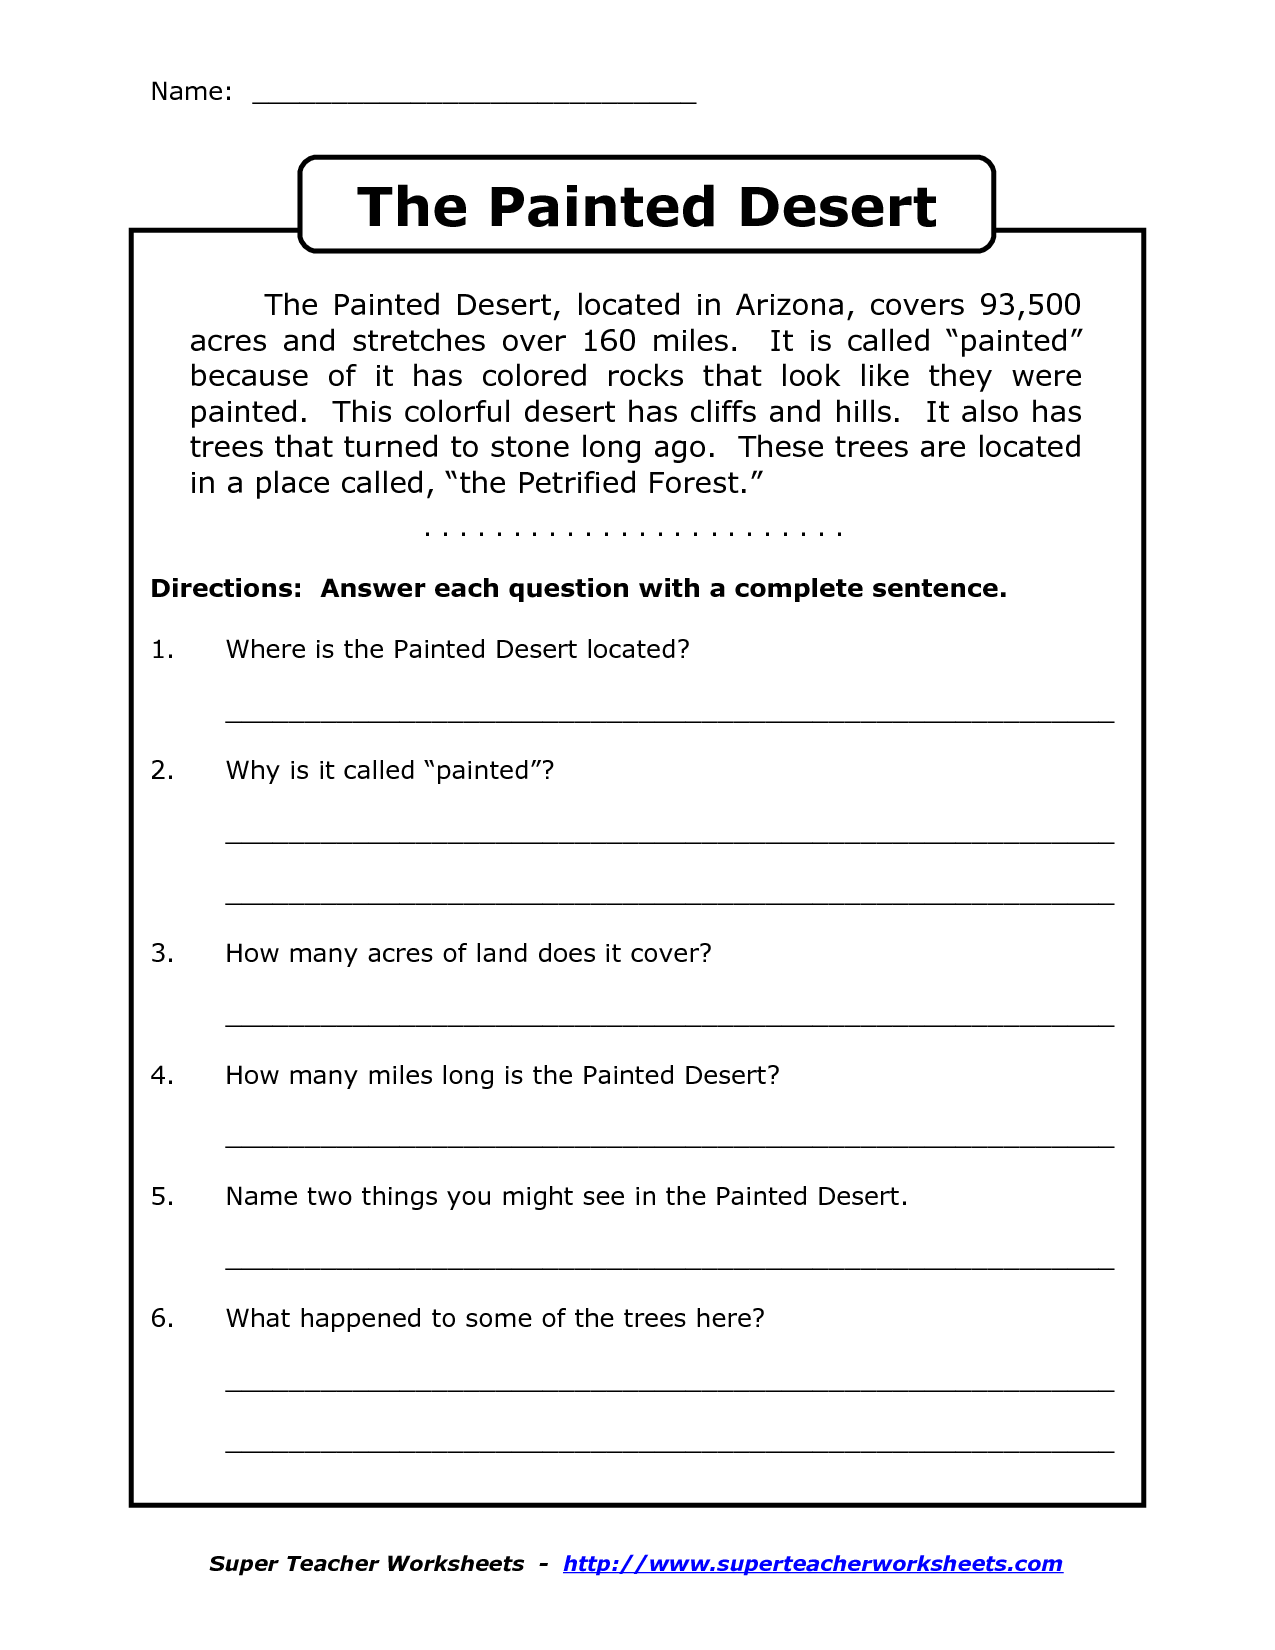 Comprehension worksheets for grade 4 pdf